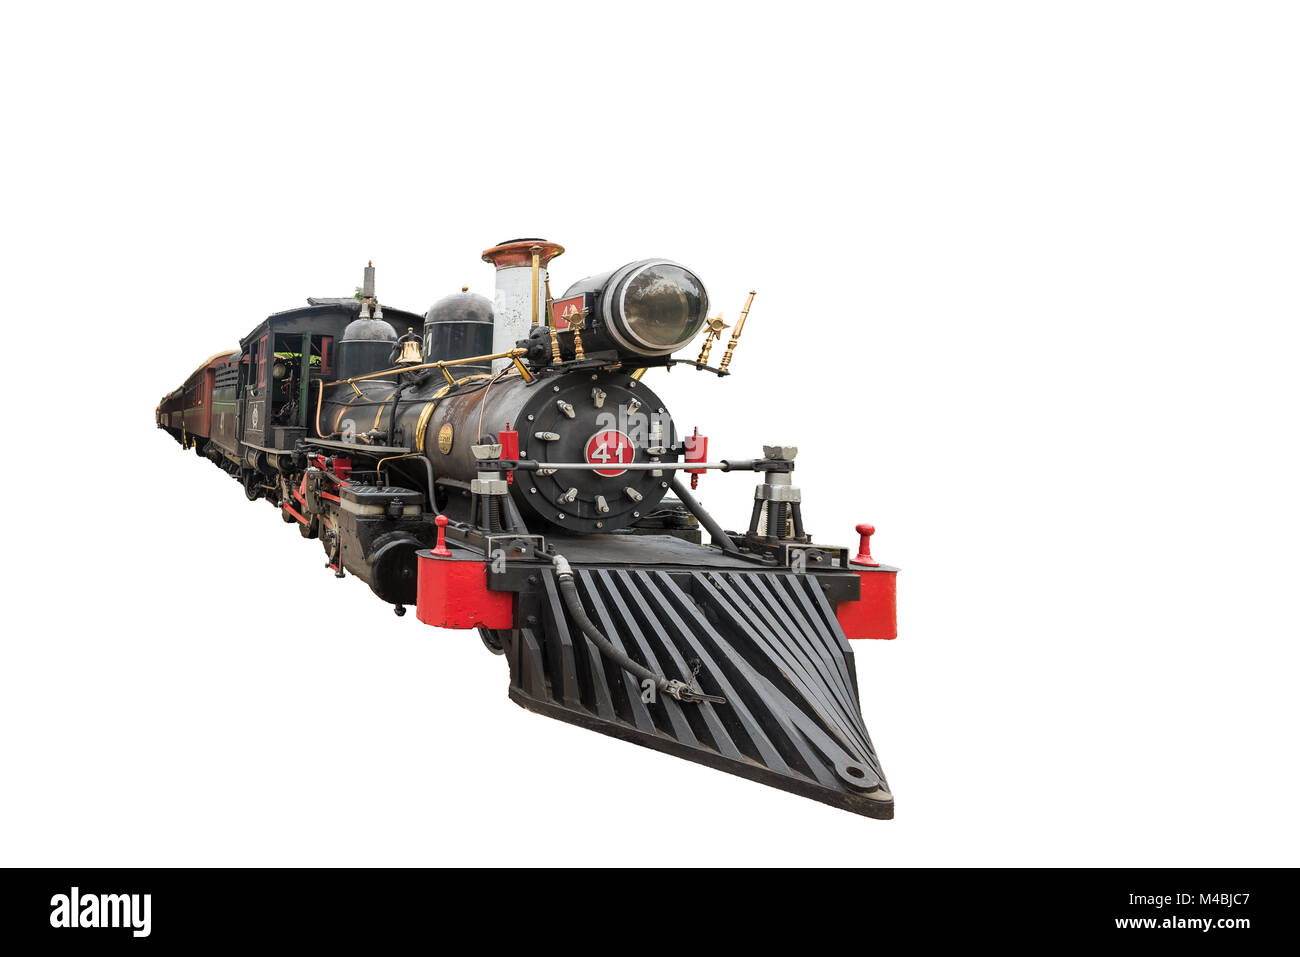 Old train in Tiradentes on white isolated background - Stock Image